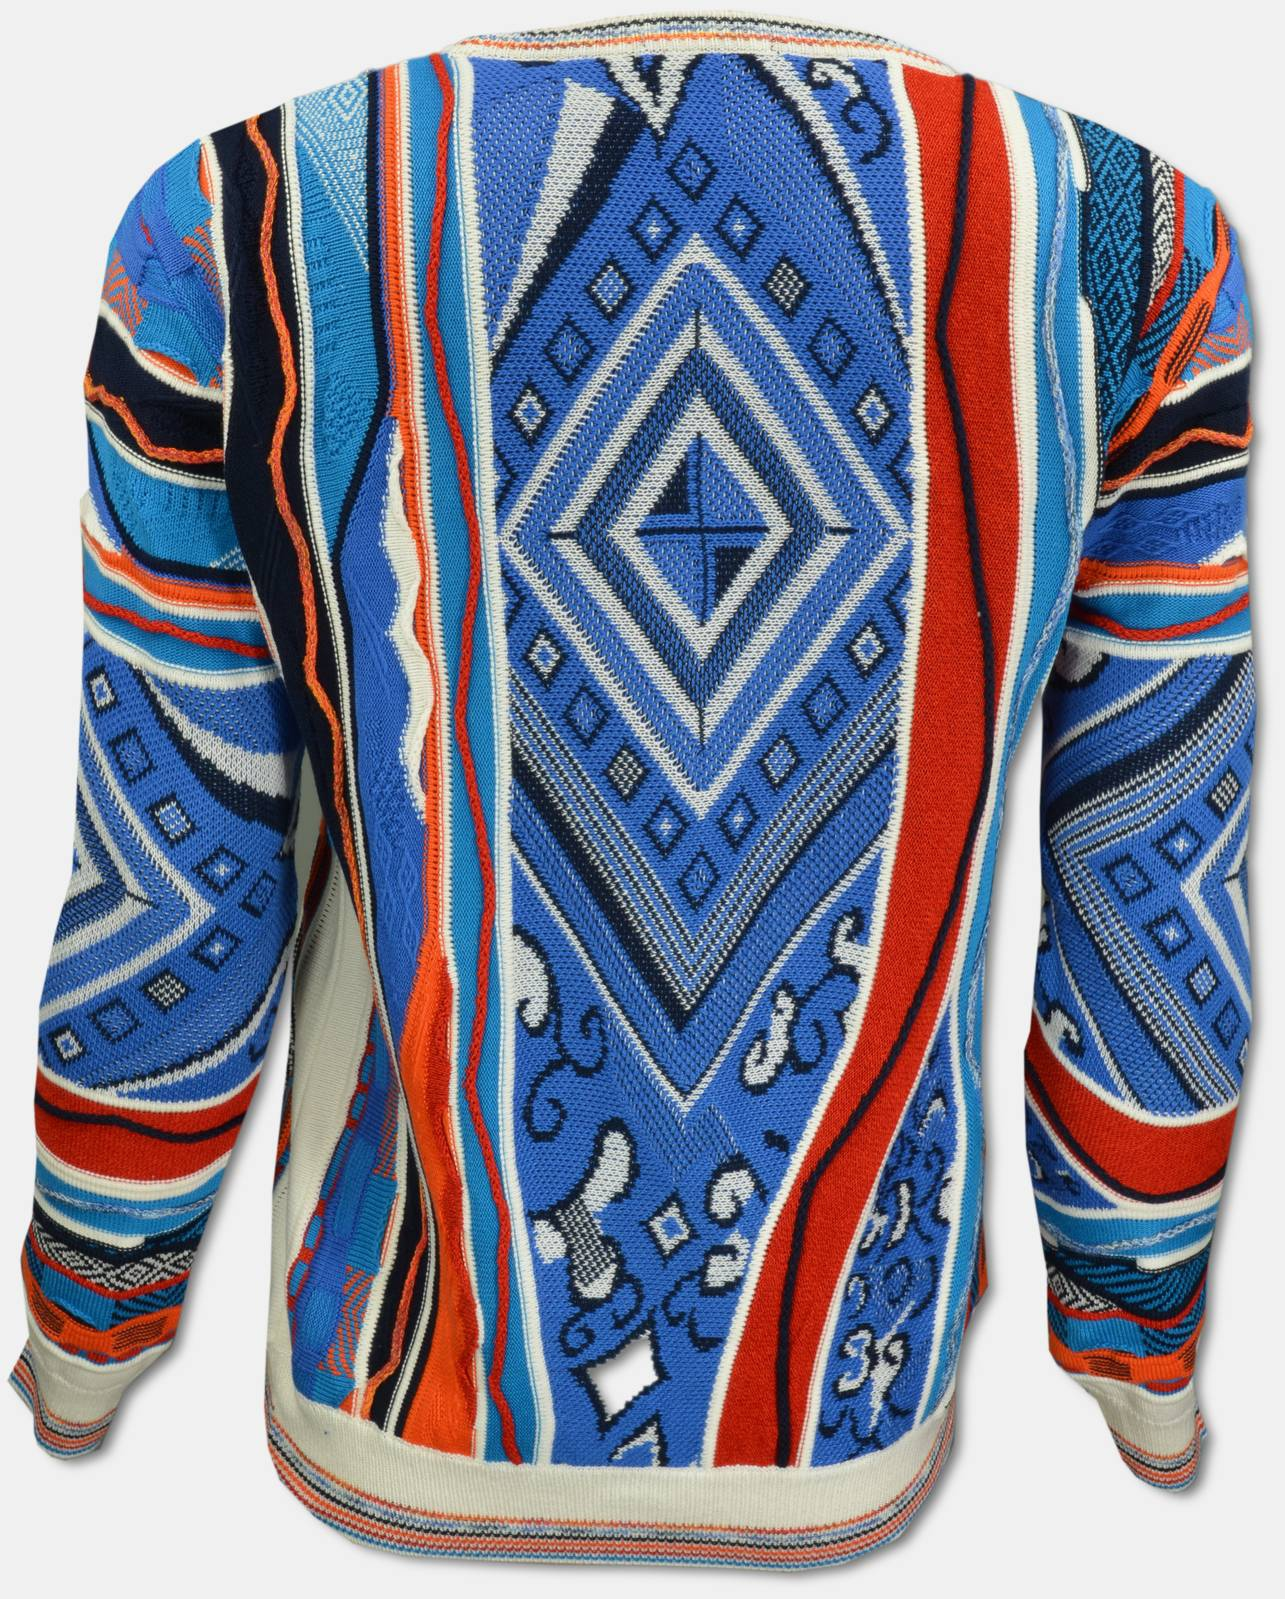 CARLO COLUCCI Online Shop | Pullover mit All Over Jacquard Muster, Blau Weiß gemustert XS